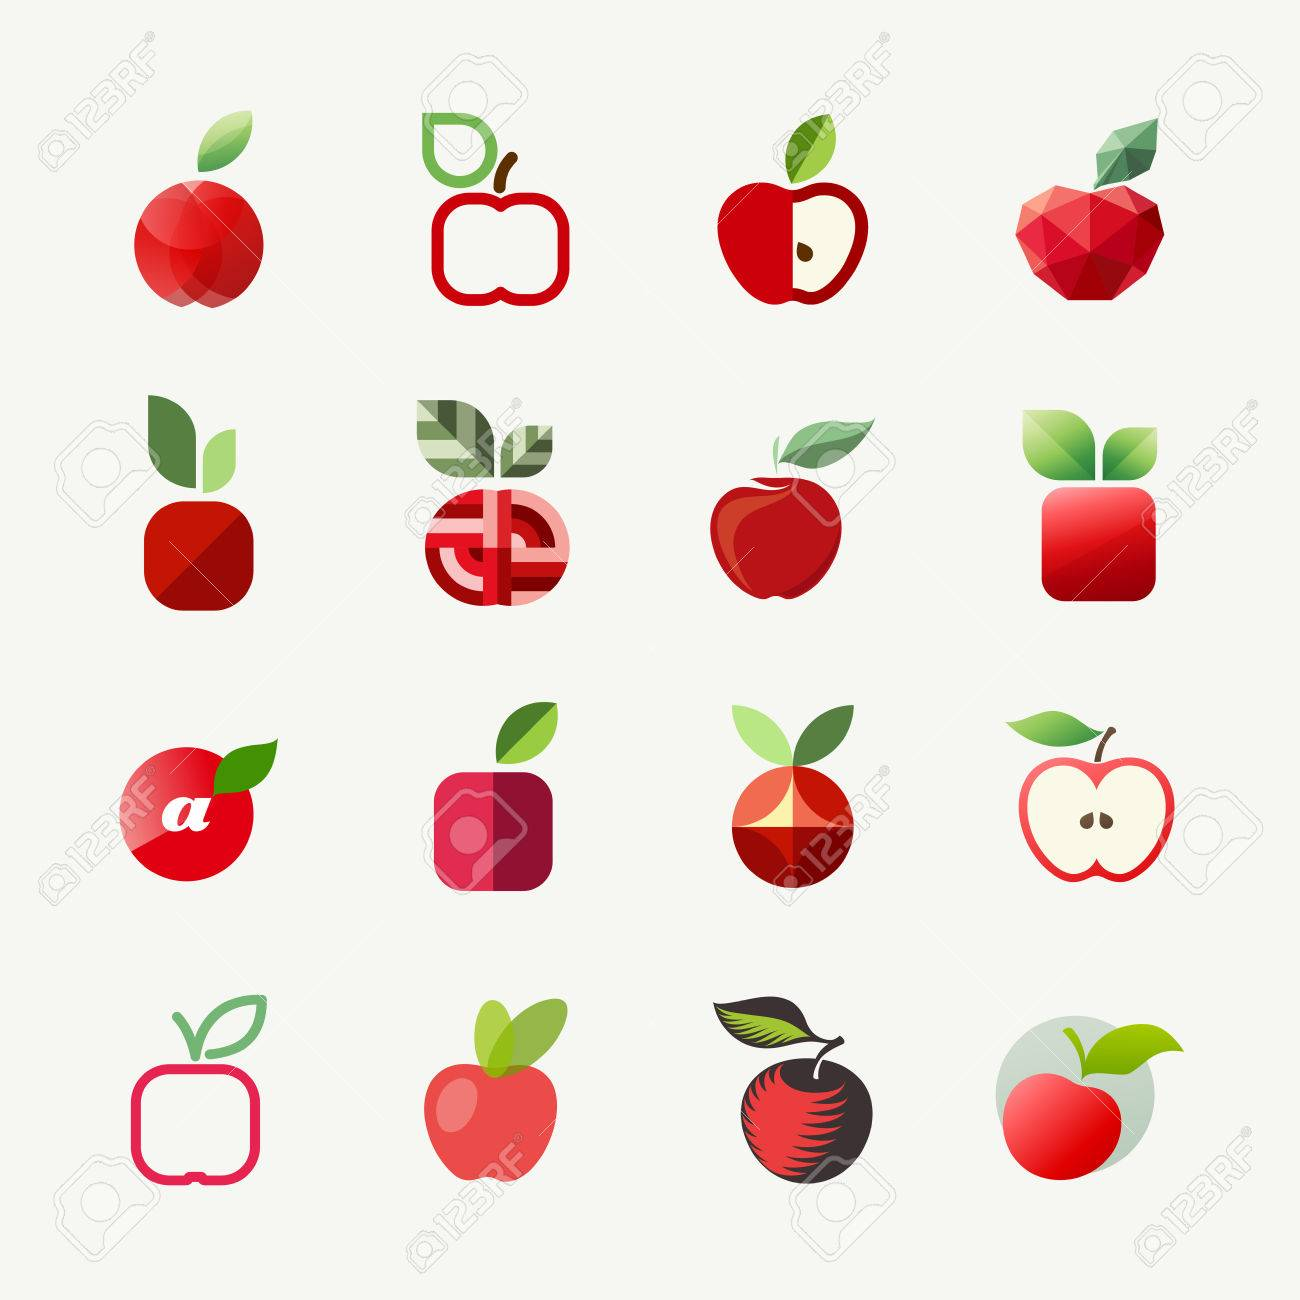 apple stock photos u0026 pictures royalty free apple images and stock